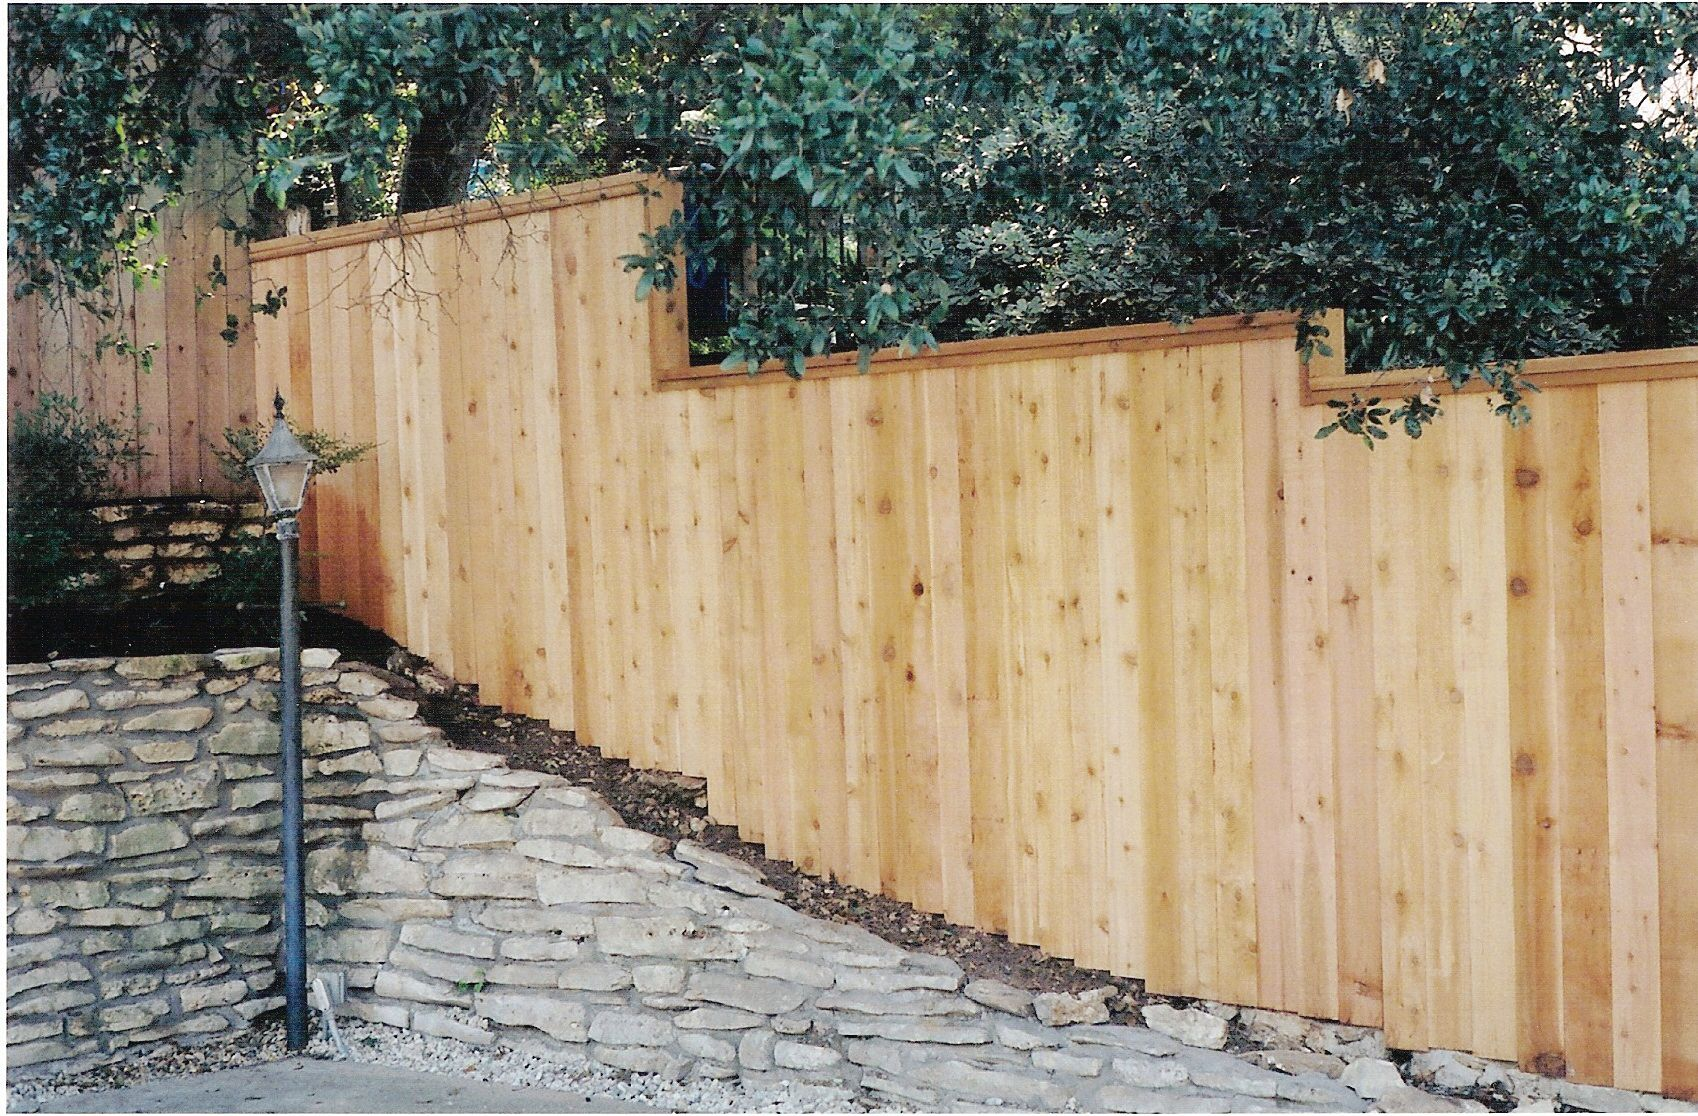 Stair-stepped cedar fence | Fences | Pinterest | Stair steps and Fences